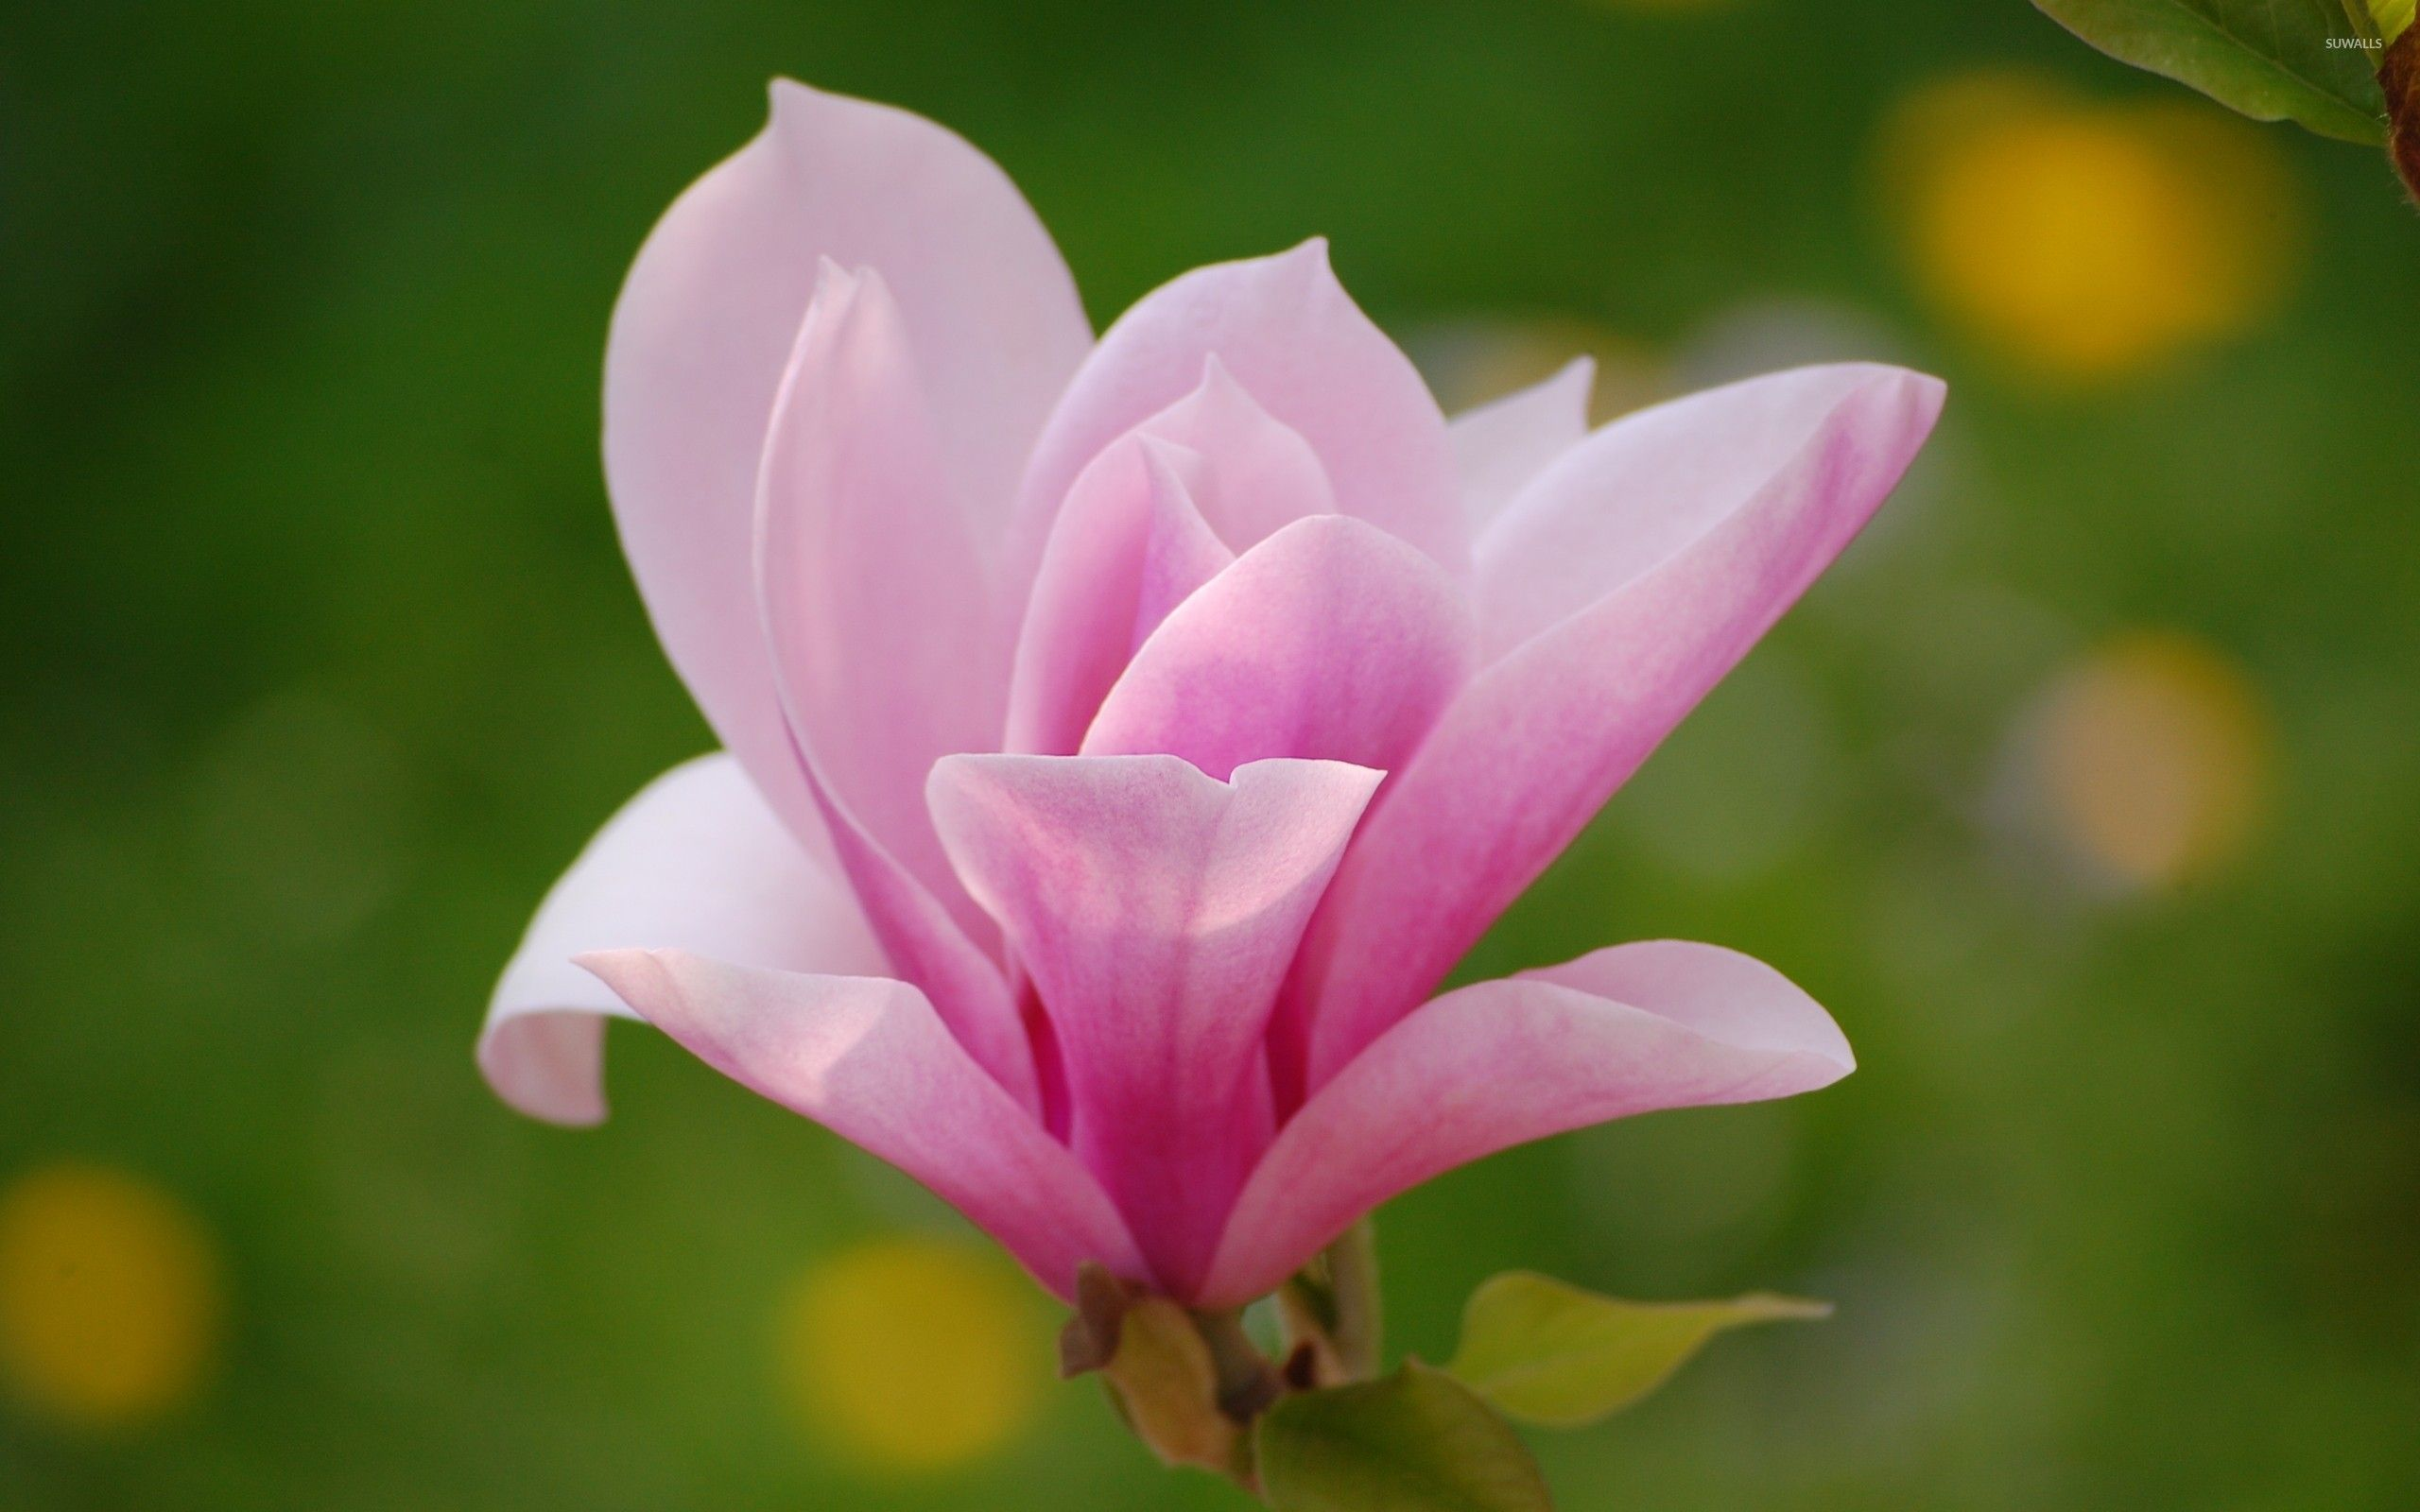 Mulan Magnolia Flower Google Search Magnolia Flower Flowers Beautiful Flowers